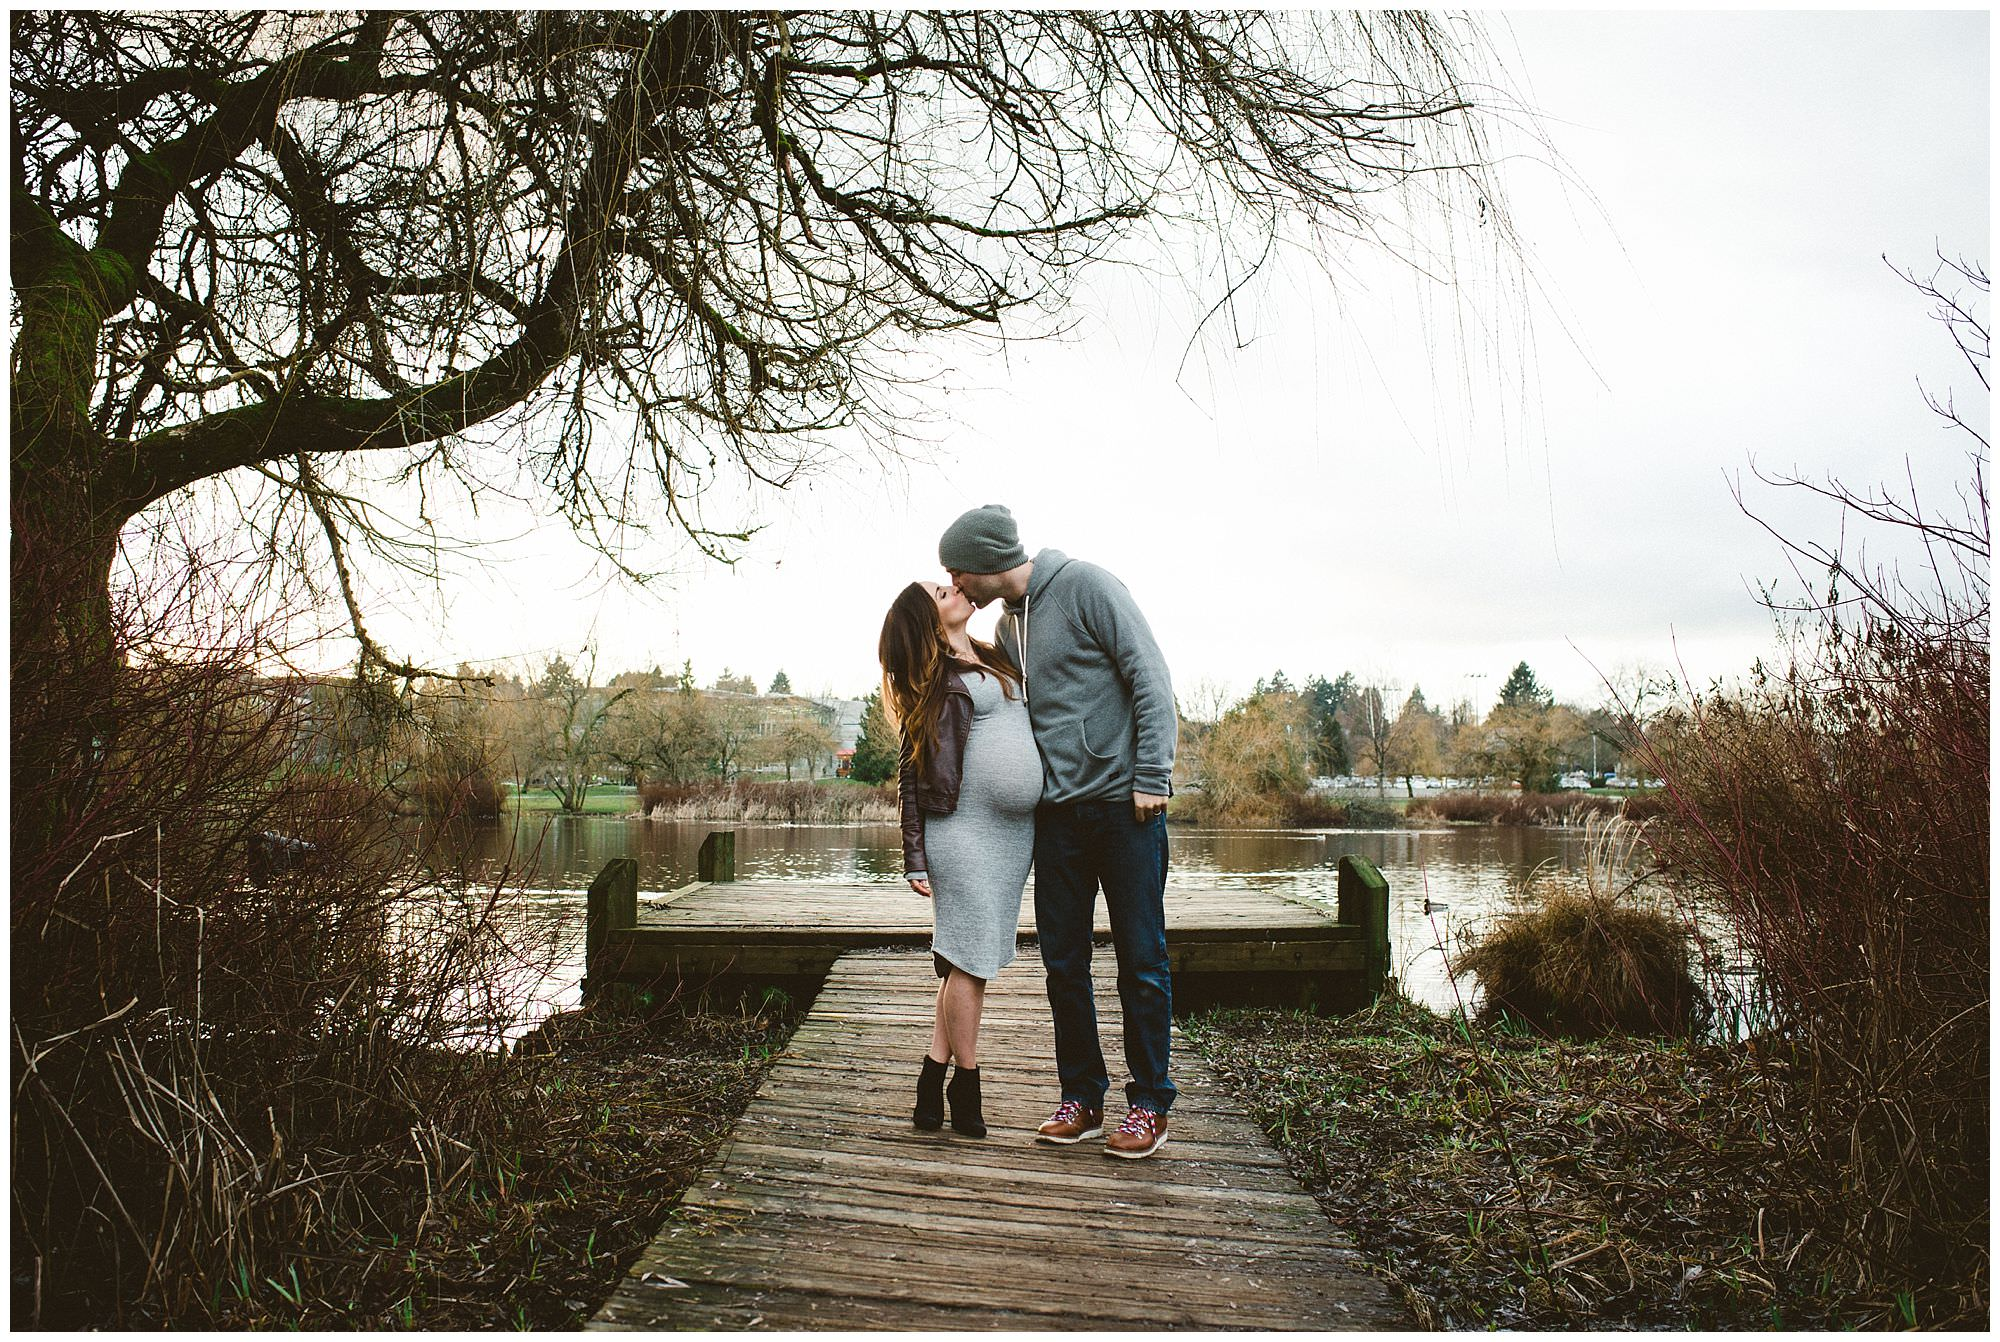 Vancouver Maternity Photographers, Vancouver Family photographers, Vancouver maternity photography